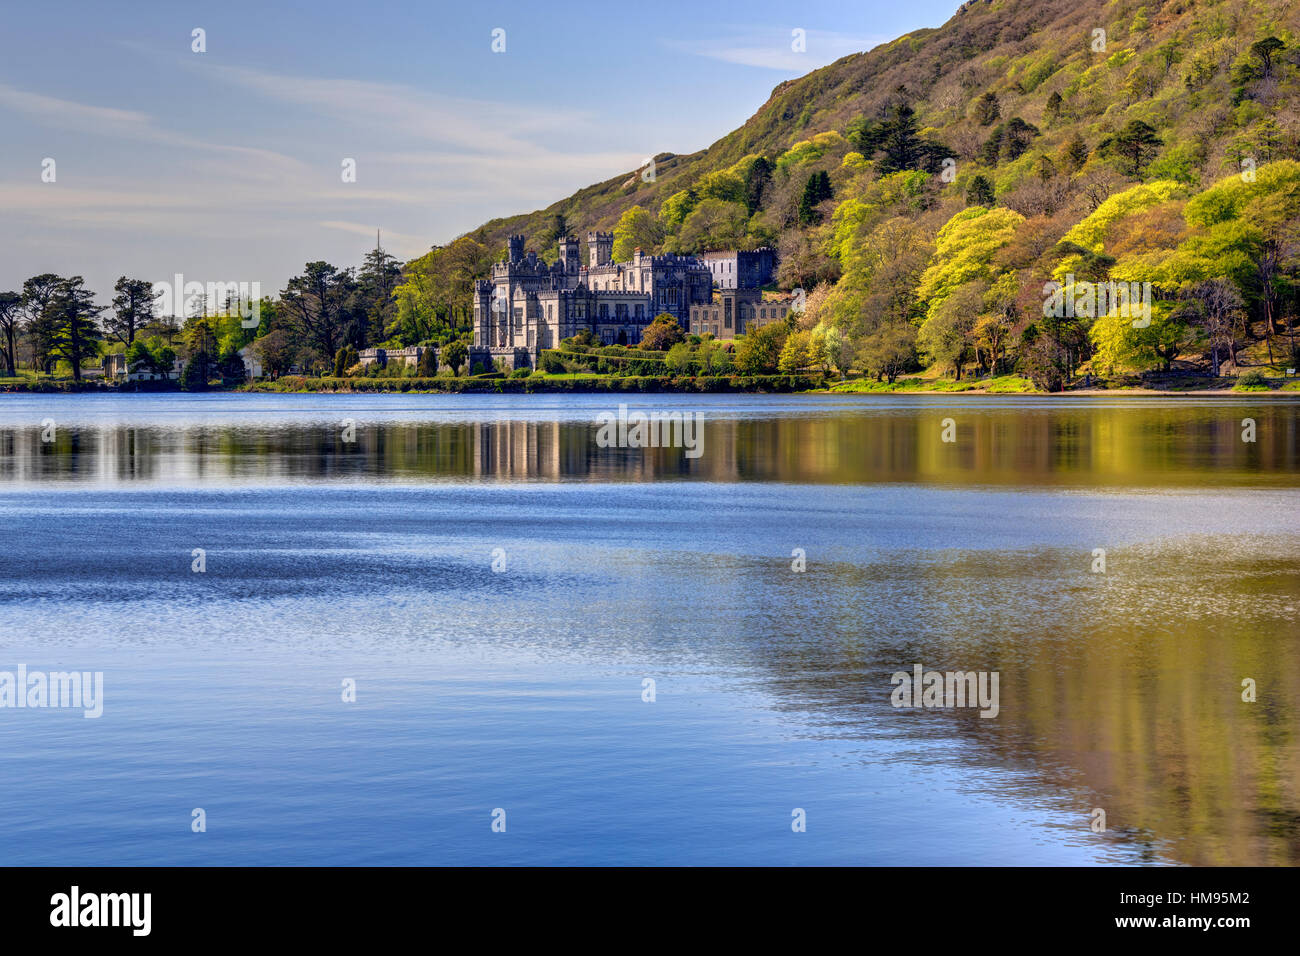 Kylemore Abbey, Connemara, County Galway, Connacht, Republic of Ireland - Stock Image